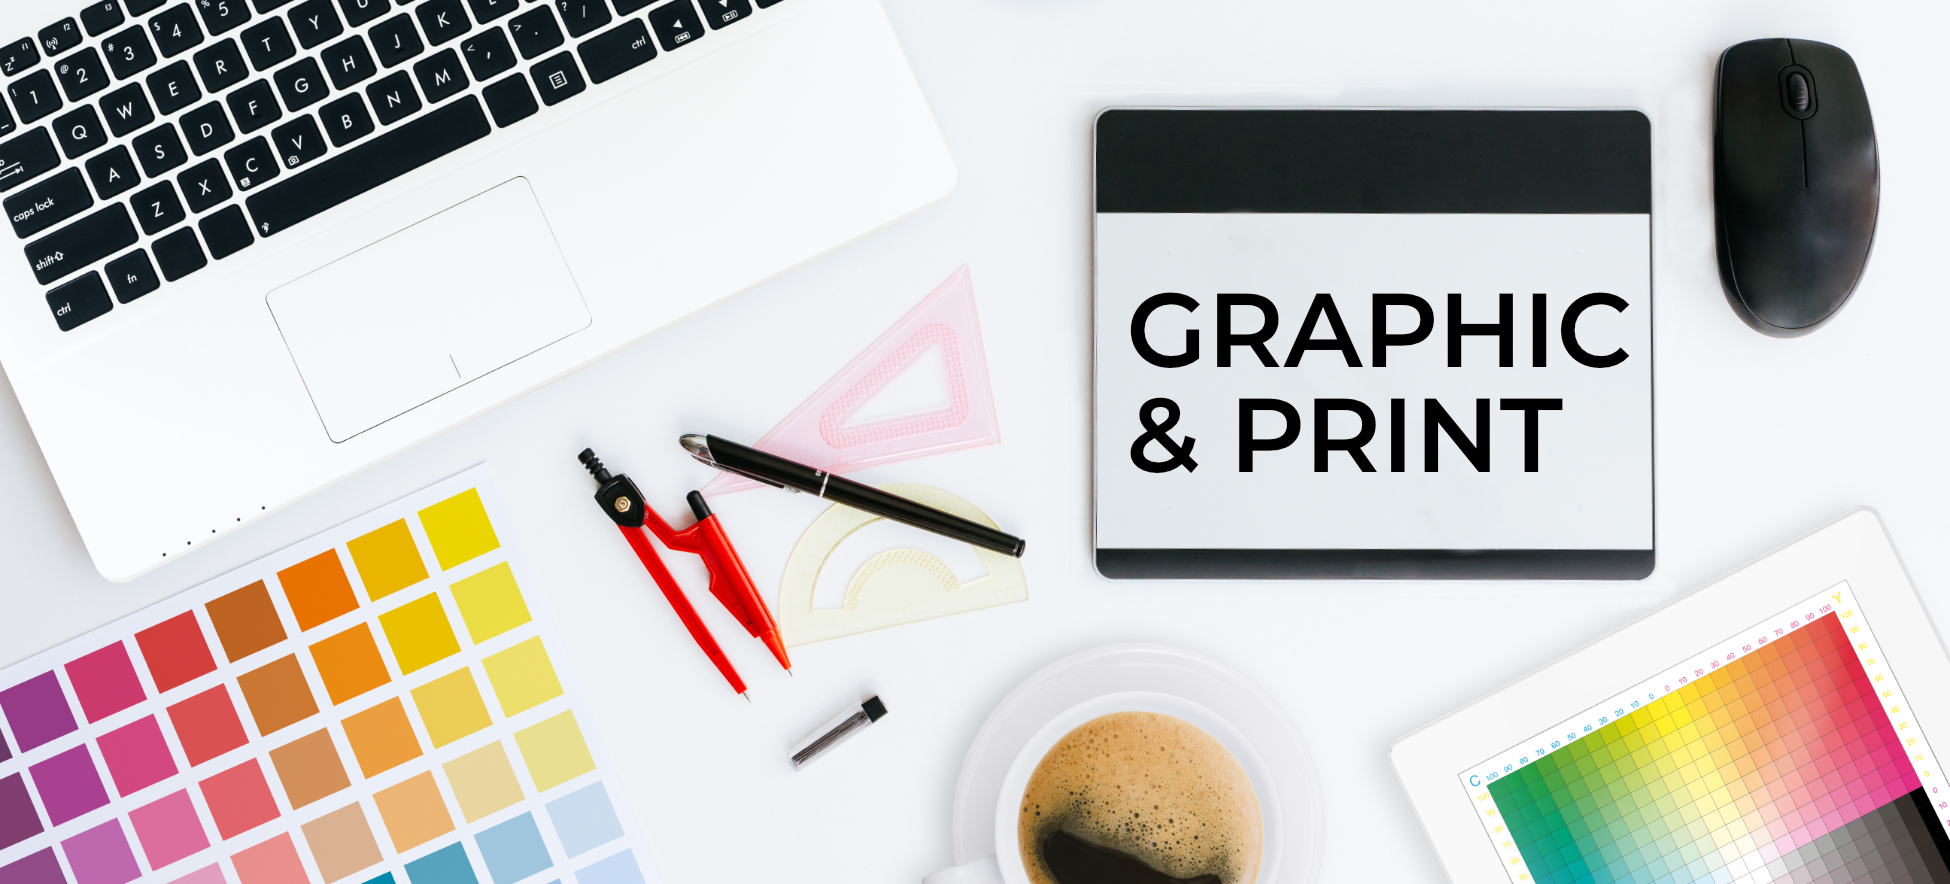 graphic and print design in nottingham header image